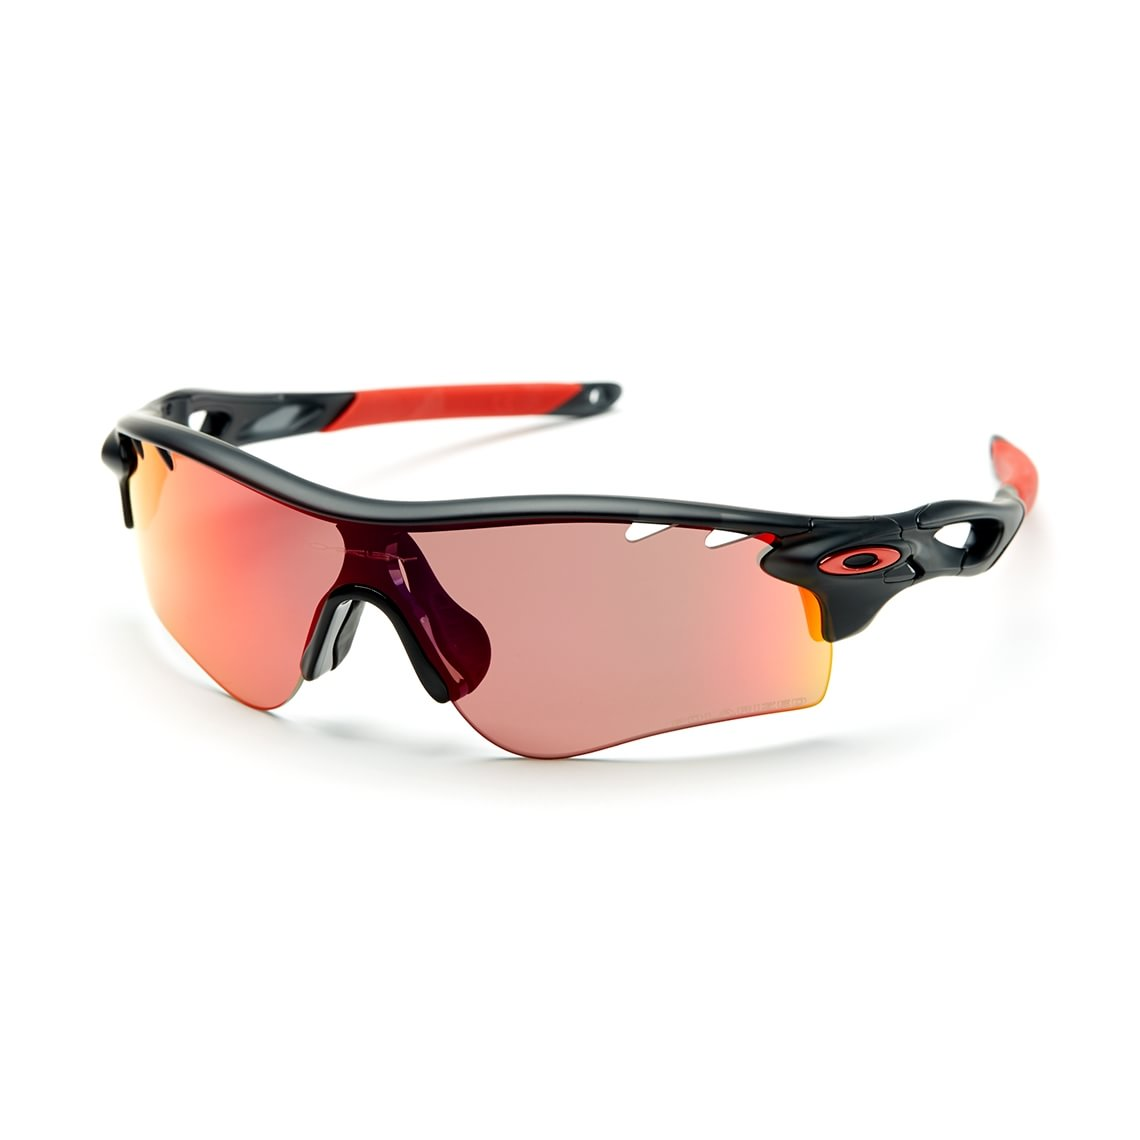 8a2f29a4c0aa0 Fake Oakley Radar Path Xl